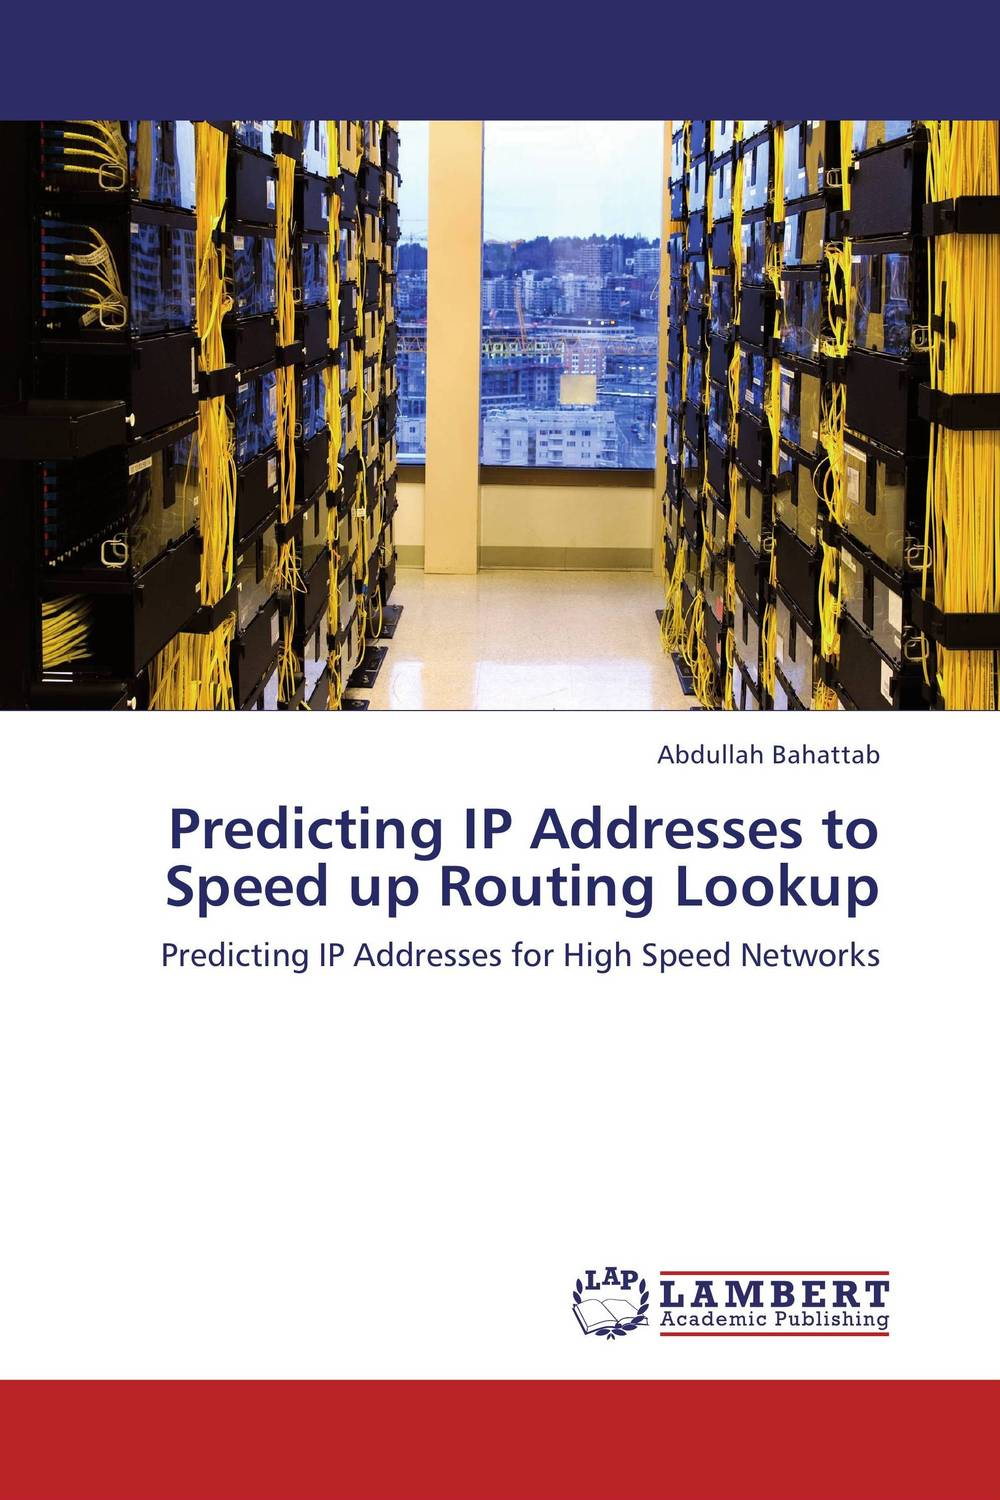 Predicting IP Addresses to Speed up Routing Lookup